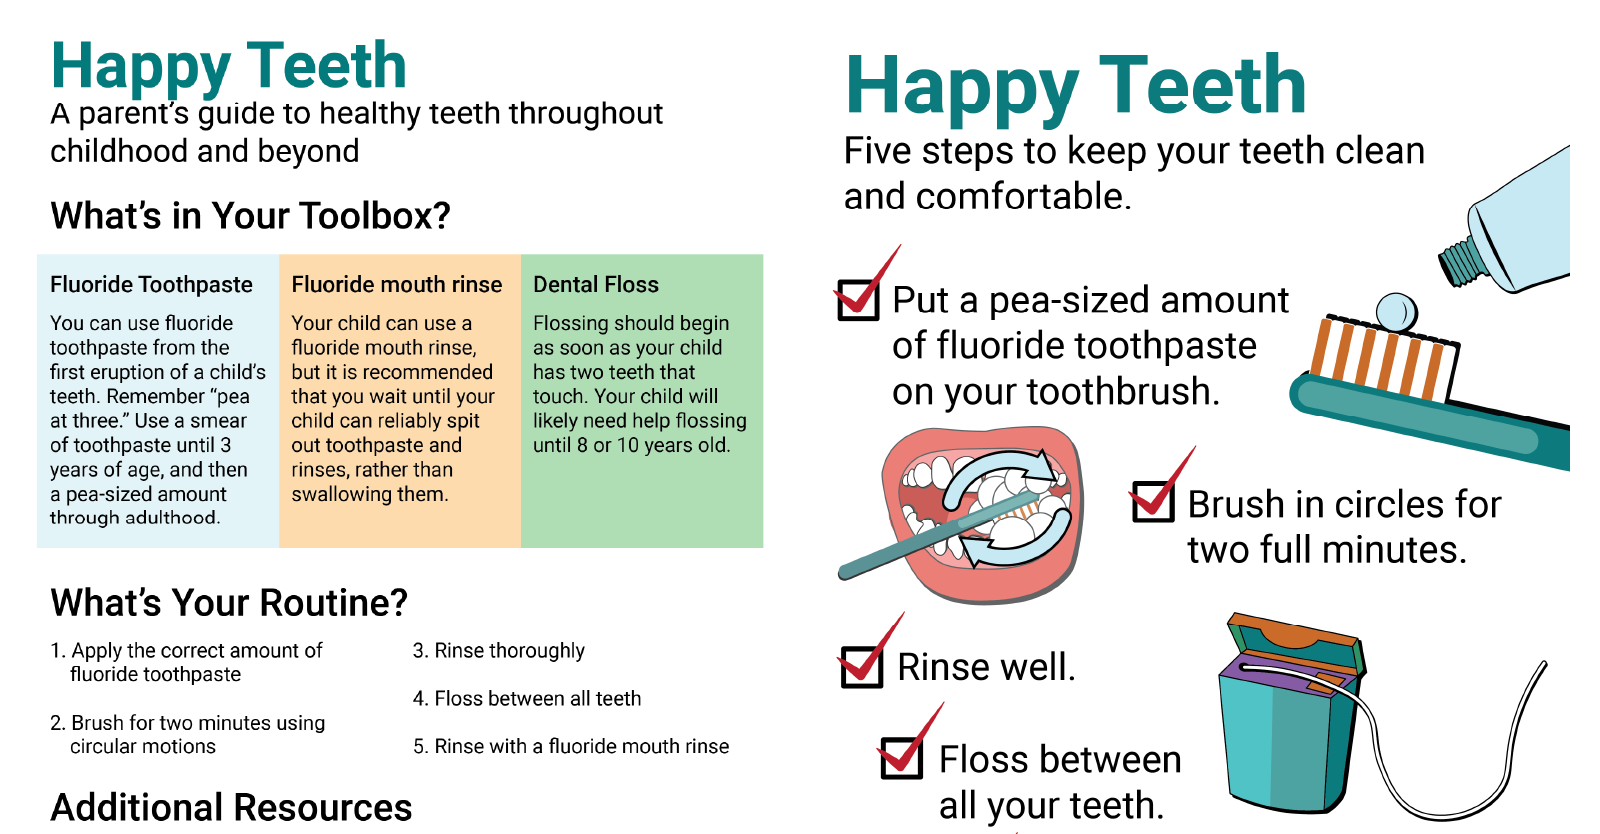 0-5: A New Parent's Guide to Oral Health